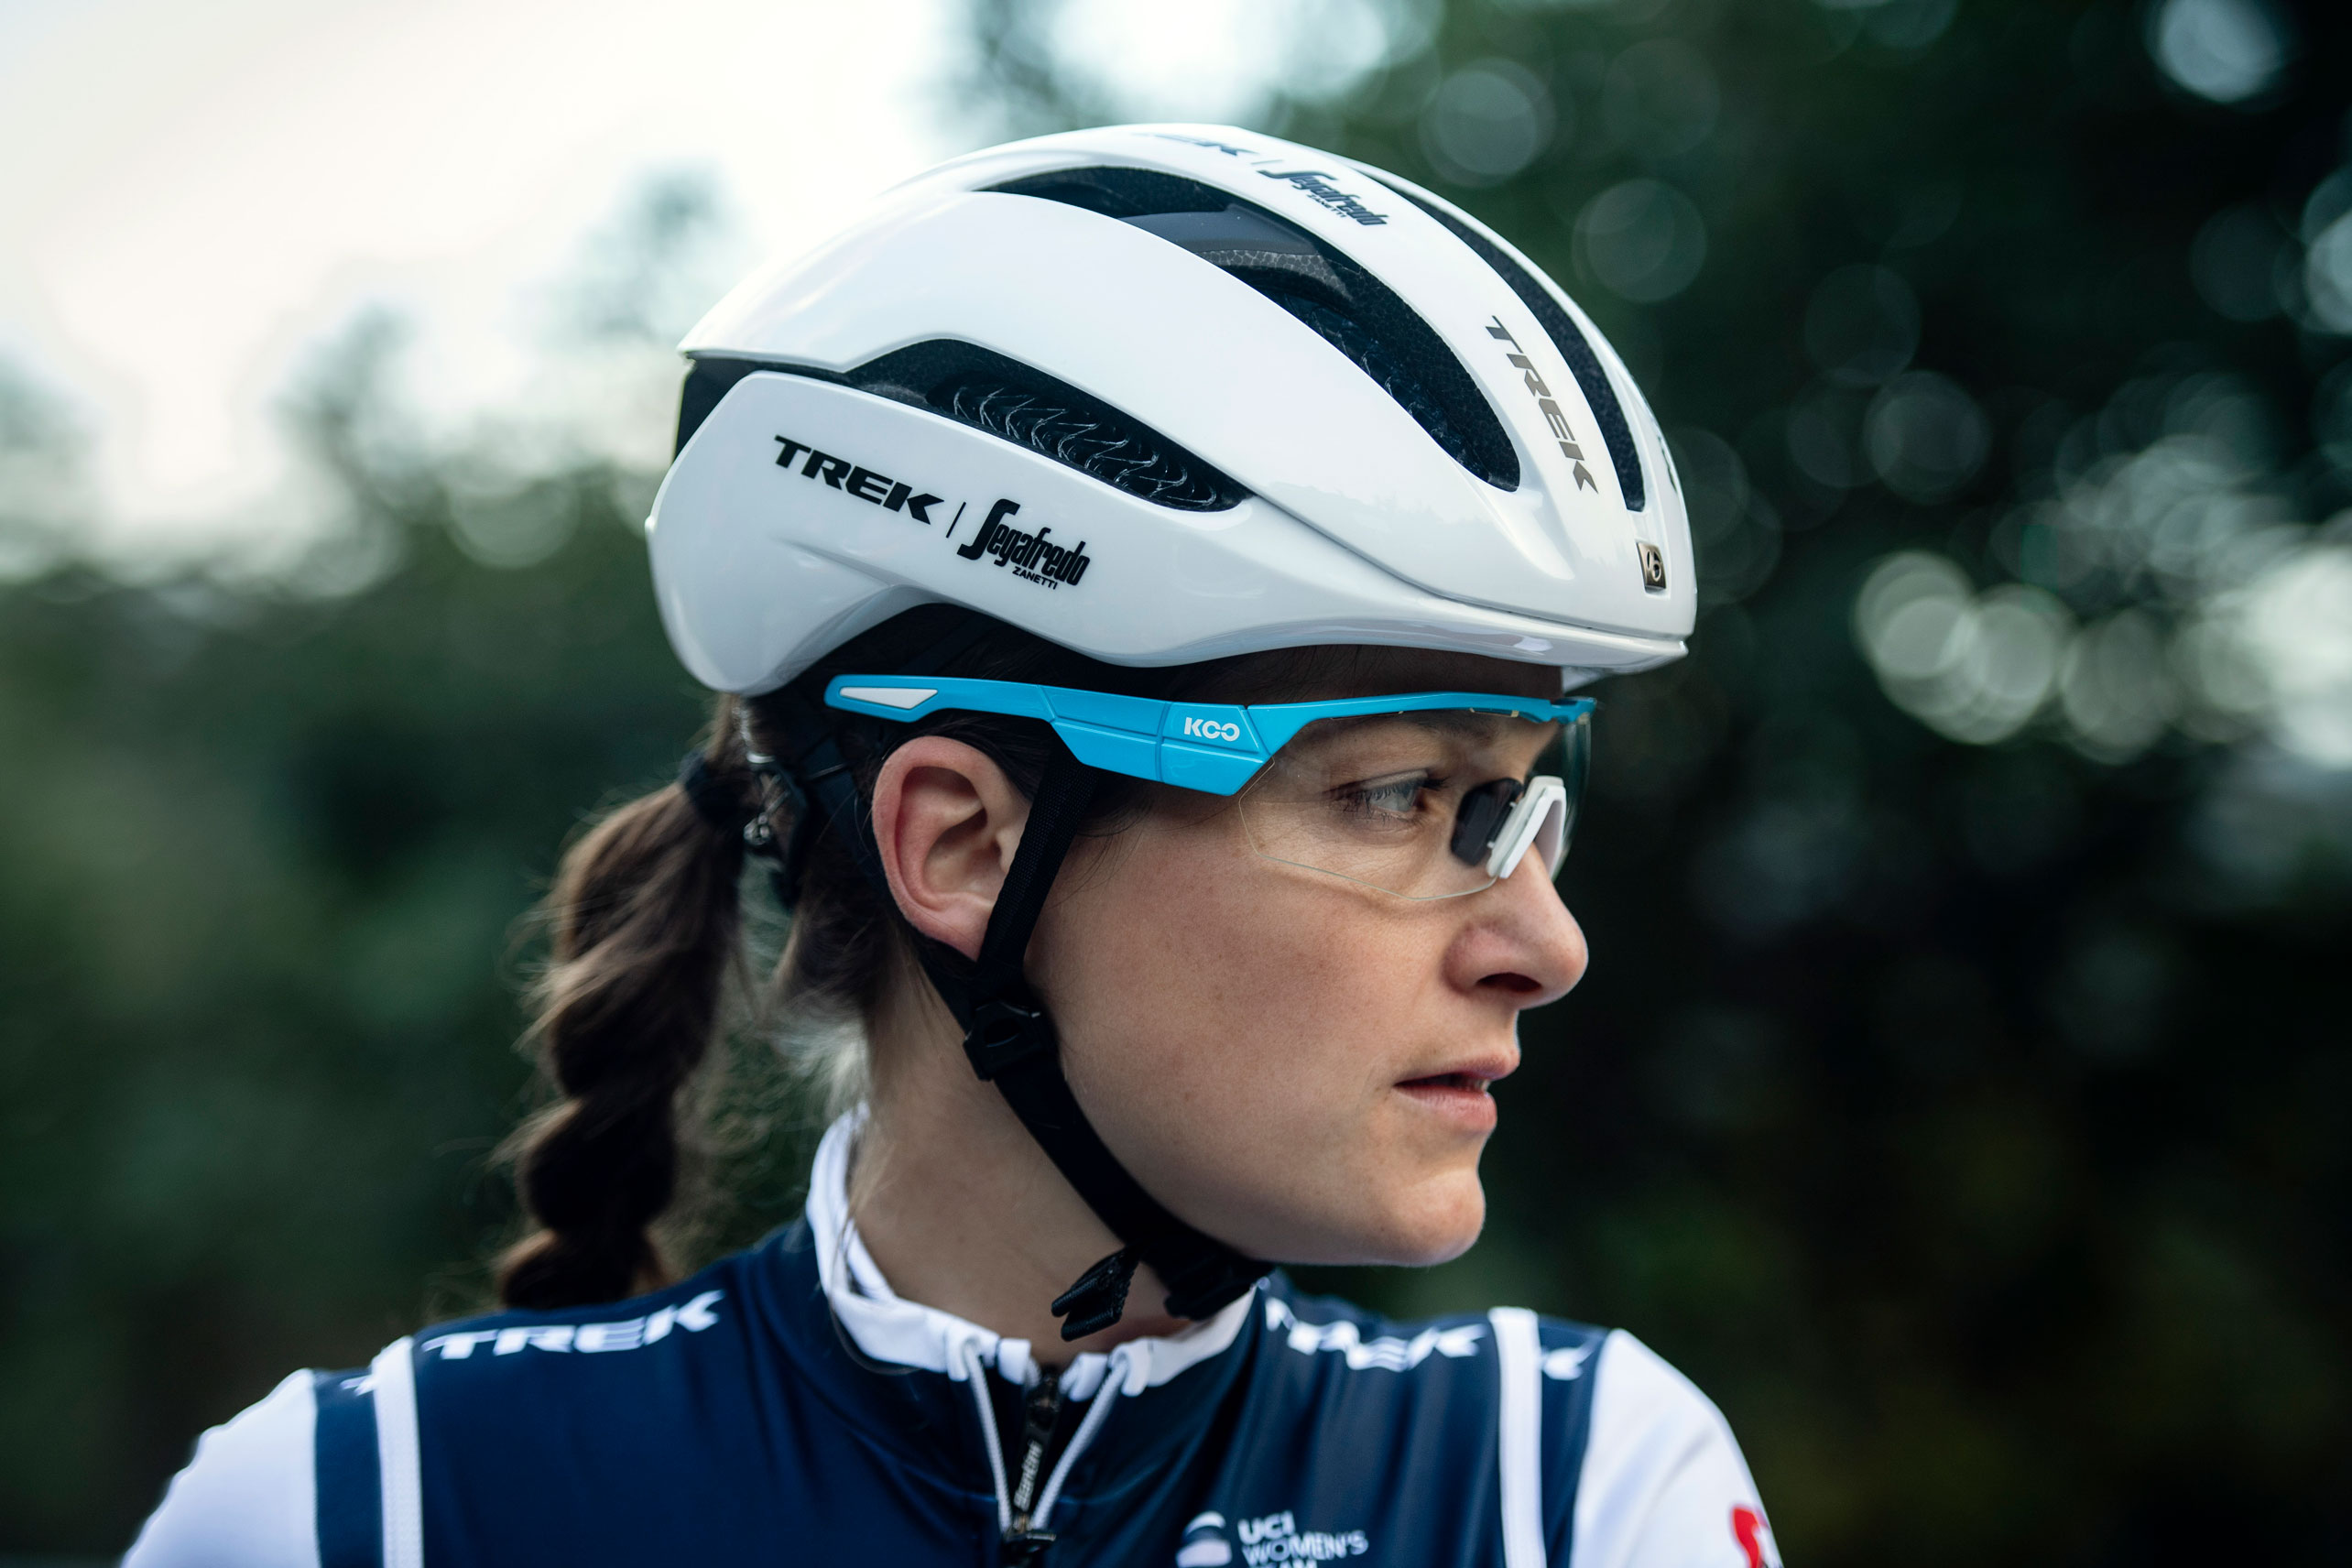 Cyclist wearing Bonrager WaveCel helmet